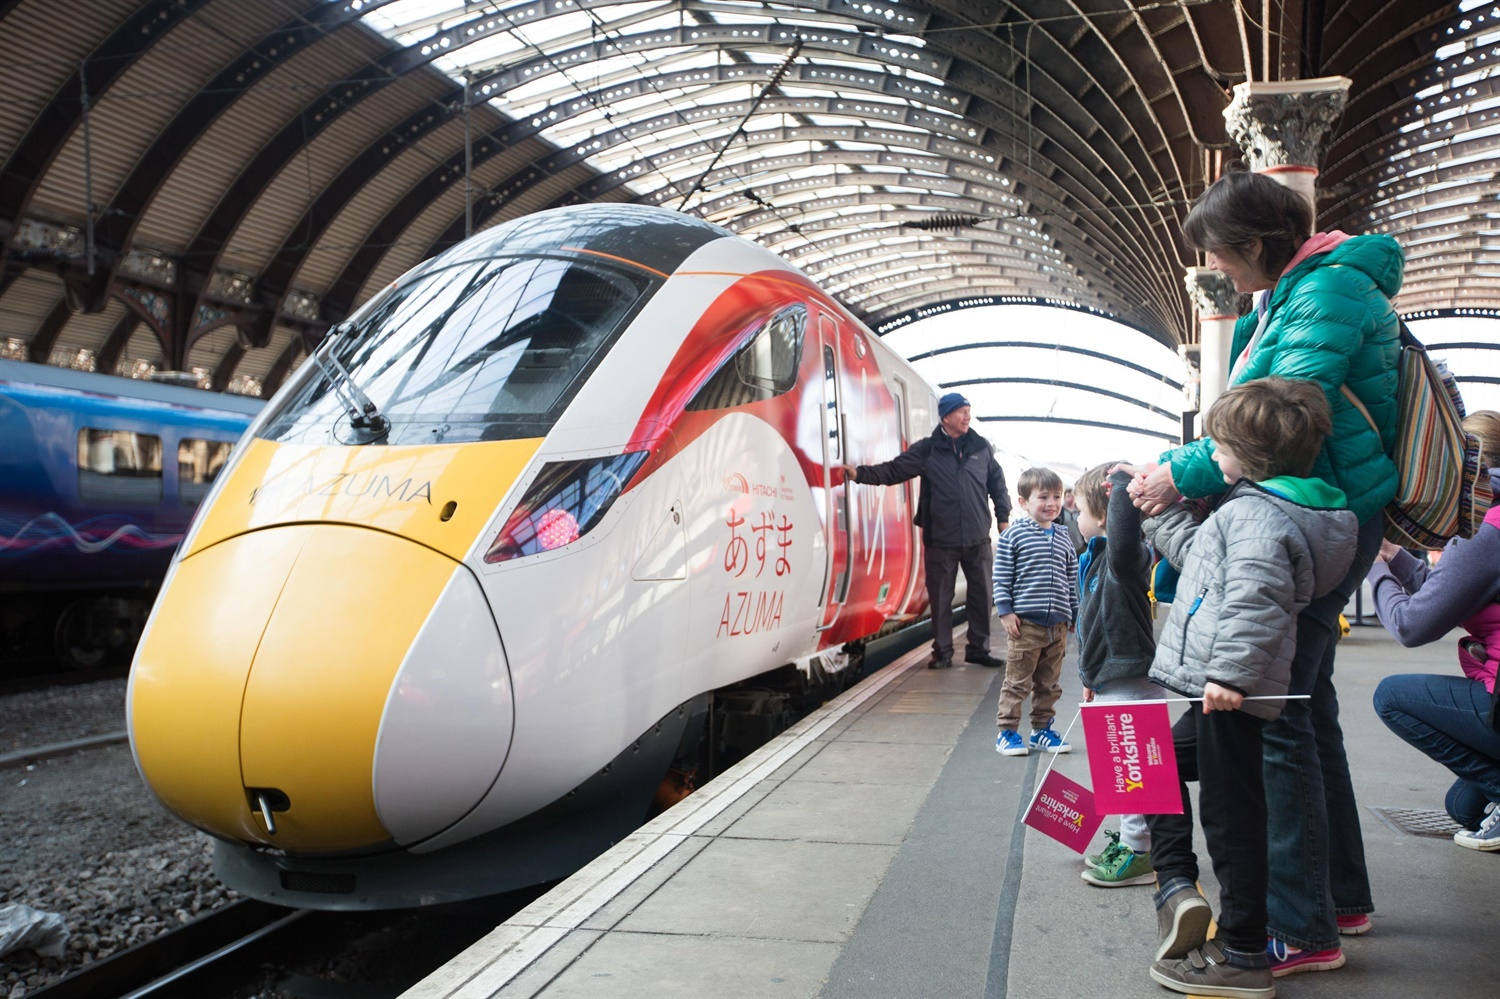 LNER trains for ECML given approval to enter passenger services